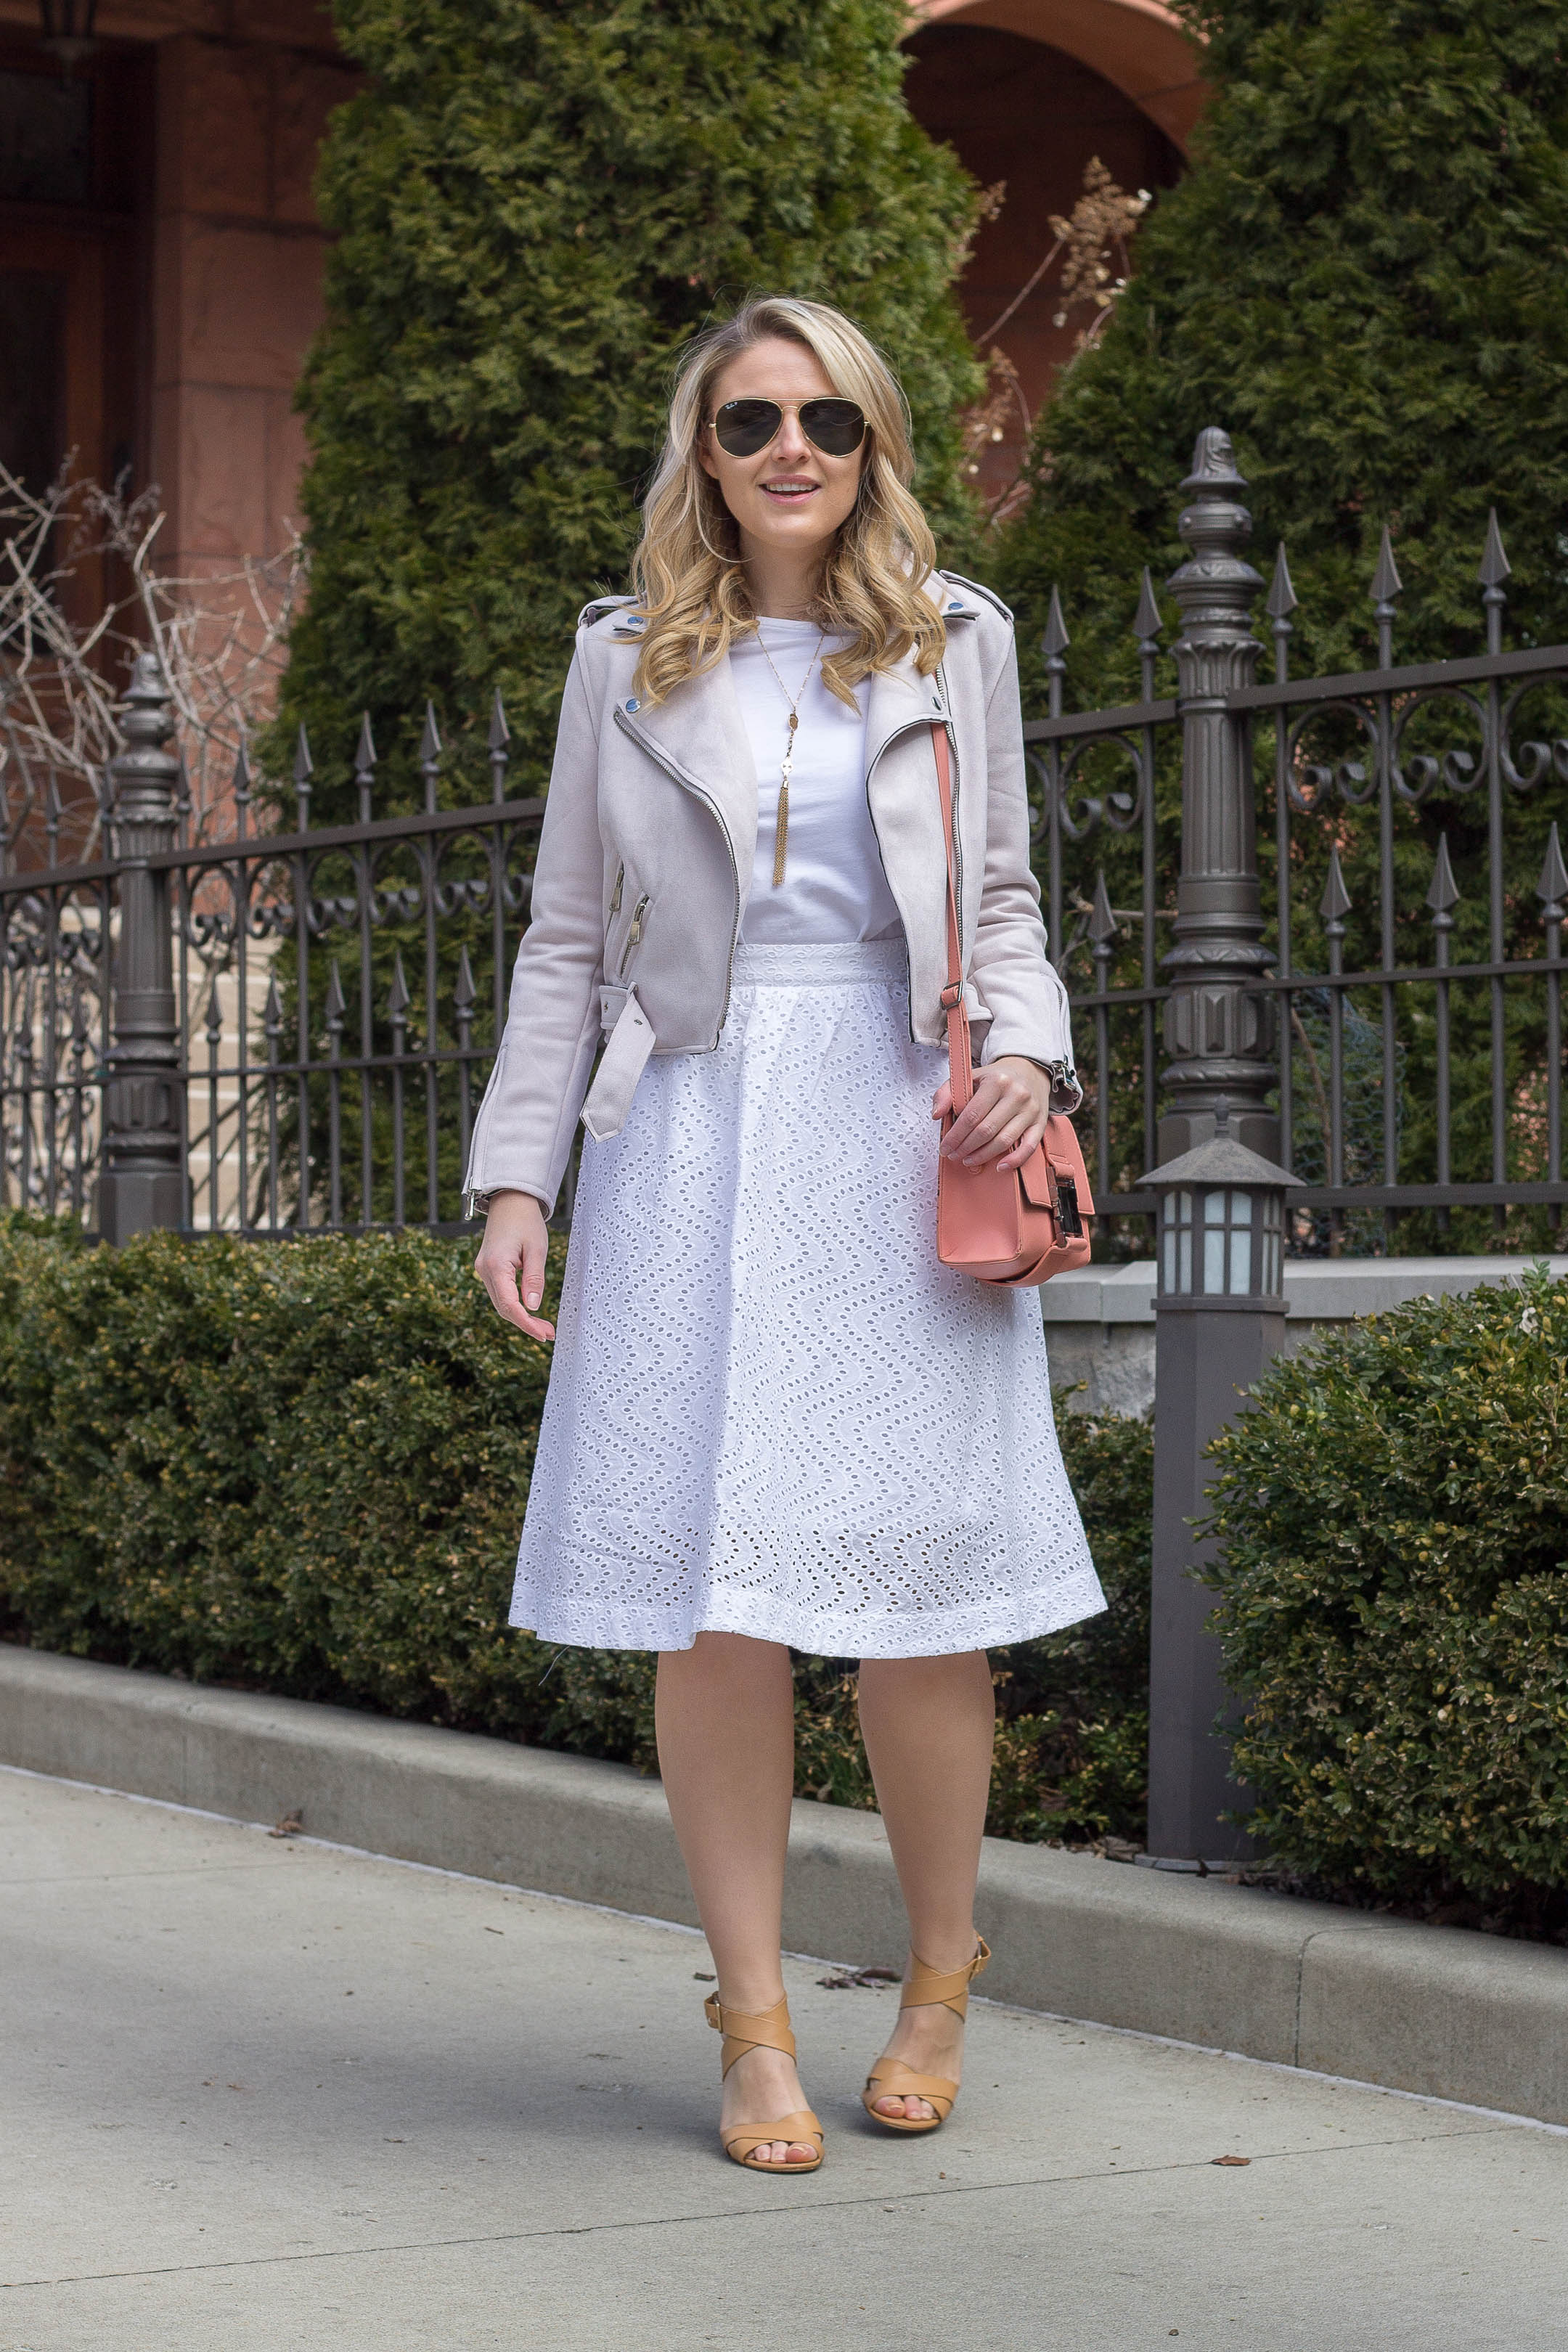 How to wear all white this spring to the office